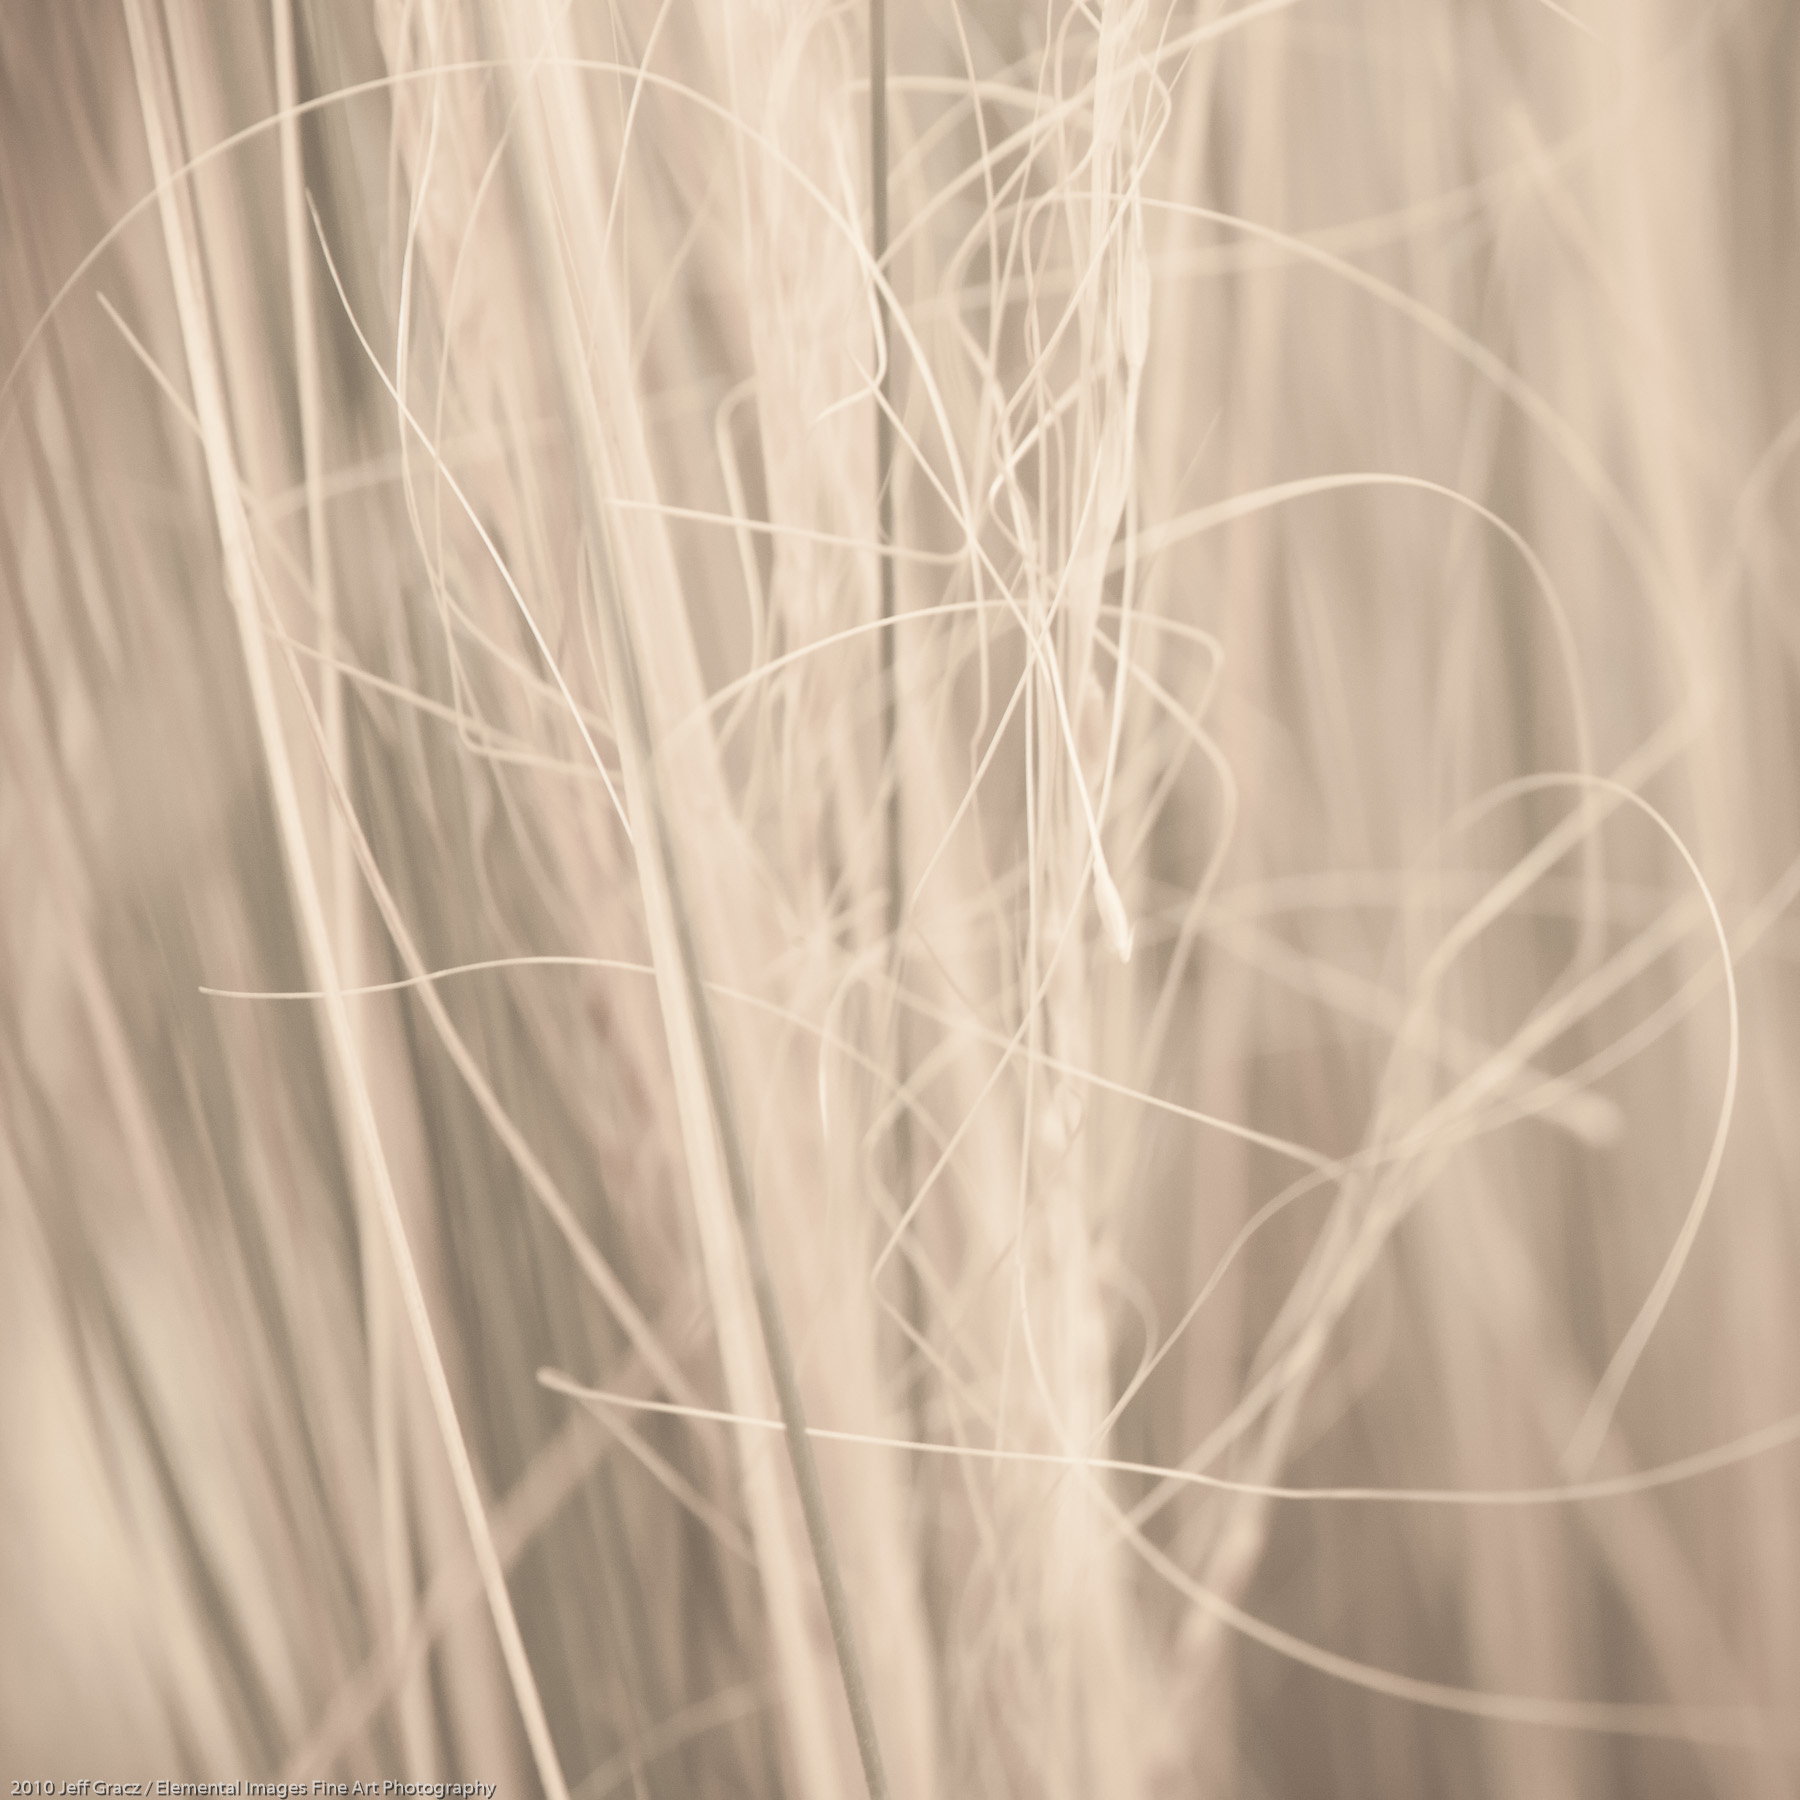 Grasses X | Portland | OR | USA - © 2010 Jeff Gracz / Elemental Images Fine Art Photography - All Rights Reserved Worldwide